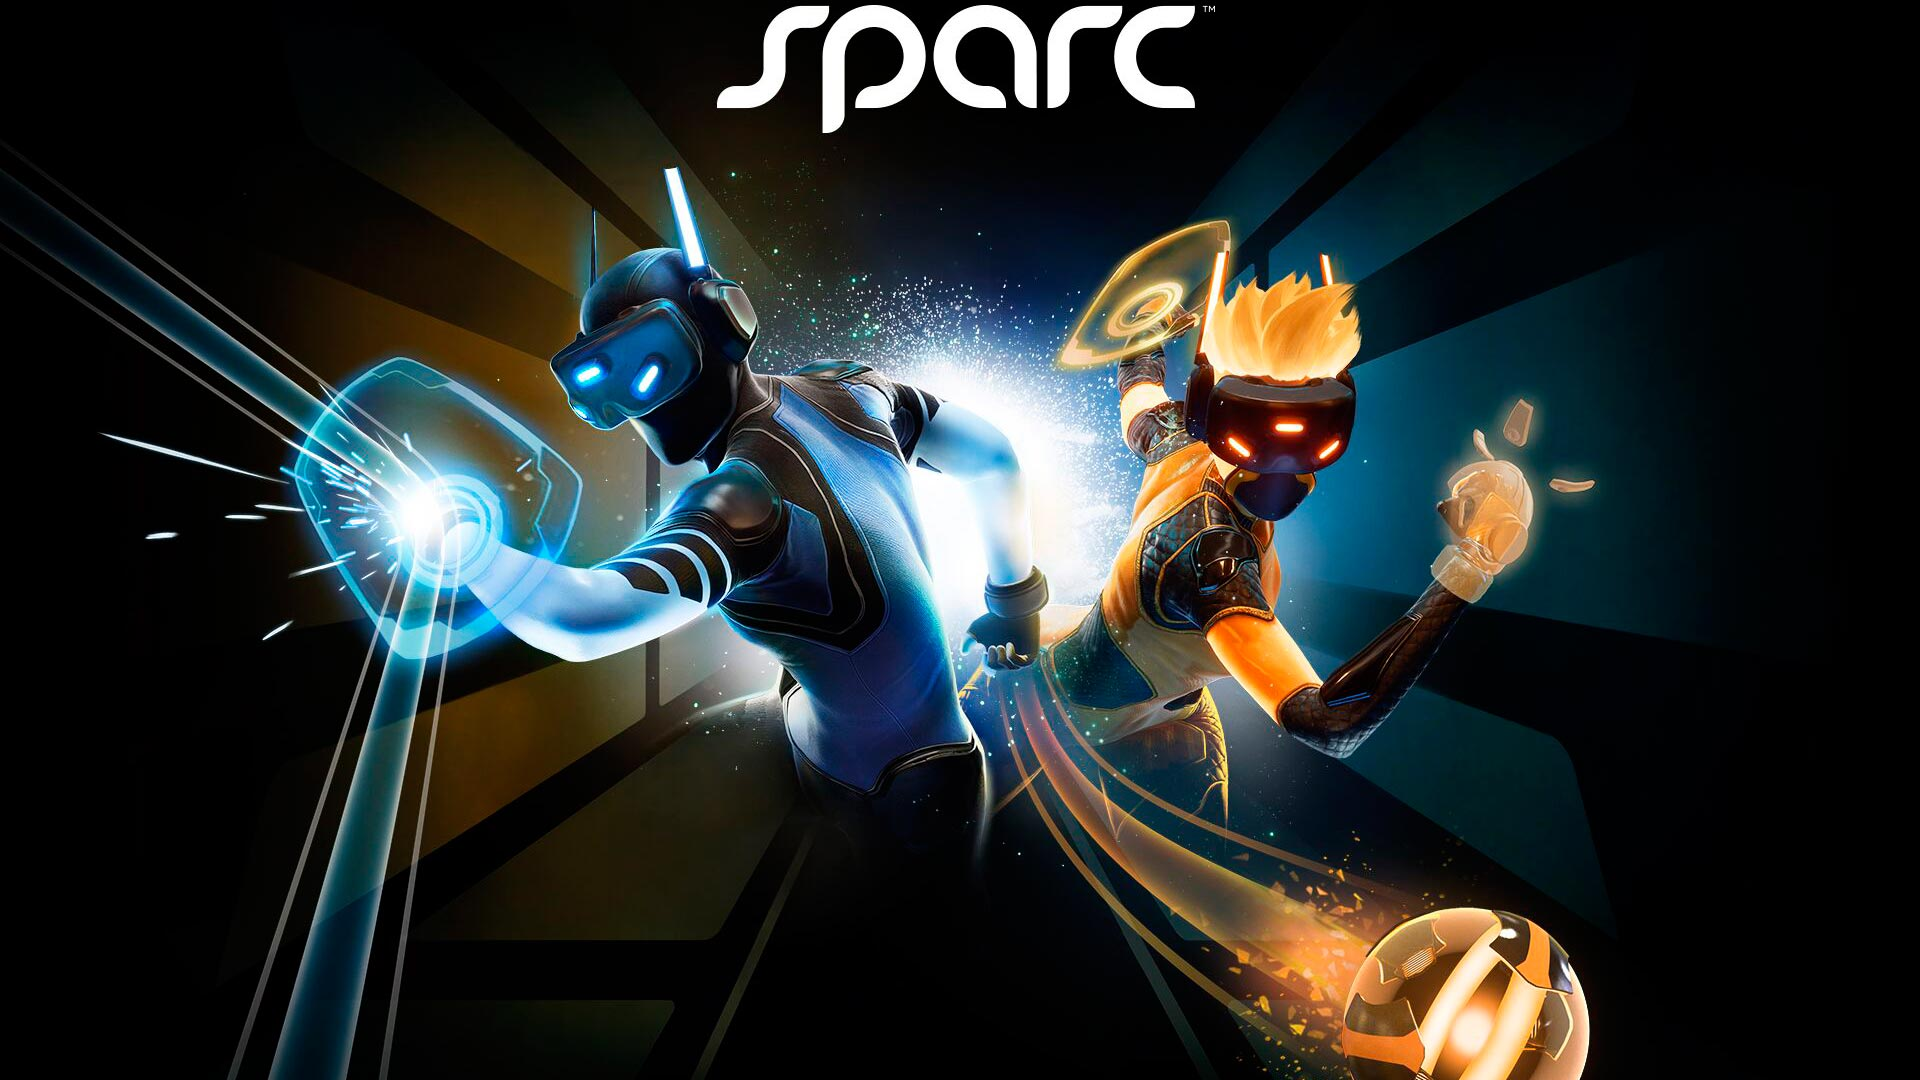 Sparc de CCP Games - PSVR - VR4player.fr